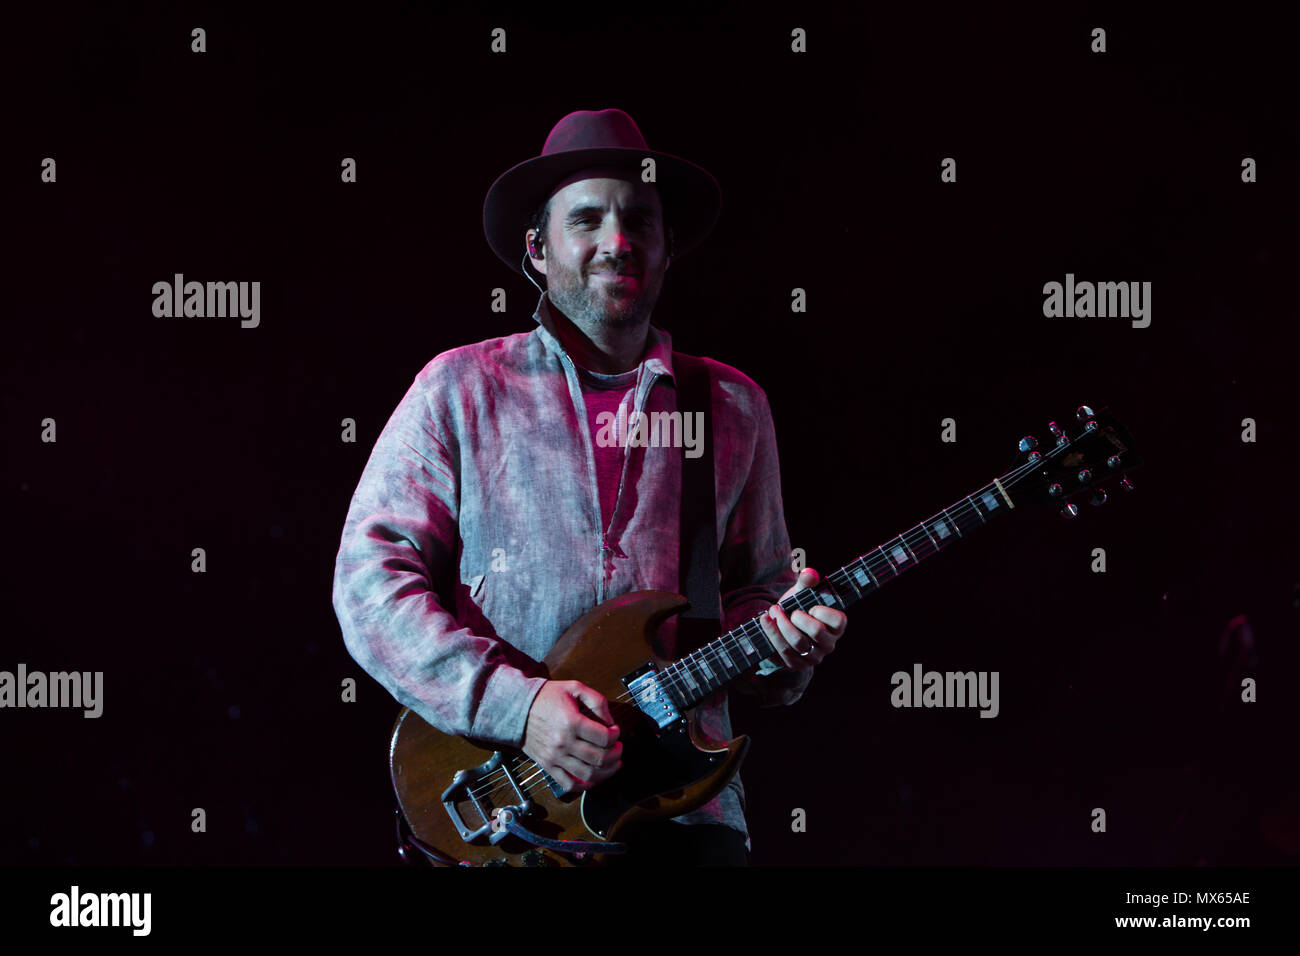 Toronto, CANADA. 02nd June 2018, Guitarist Jimmy Shaw of Canadian Pop Rock band Metric performas at the 2018 Field Trip Music & Arts Festival in Toronto. Credit: Bobby Singh/Alamay Live News Credit: topconcertphoto/Alamy Live News - Stock Image